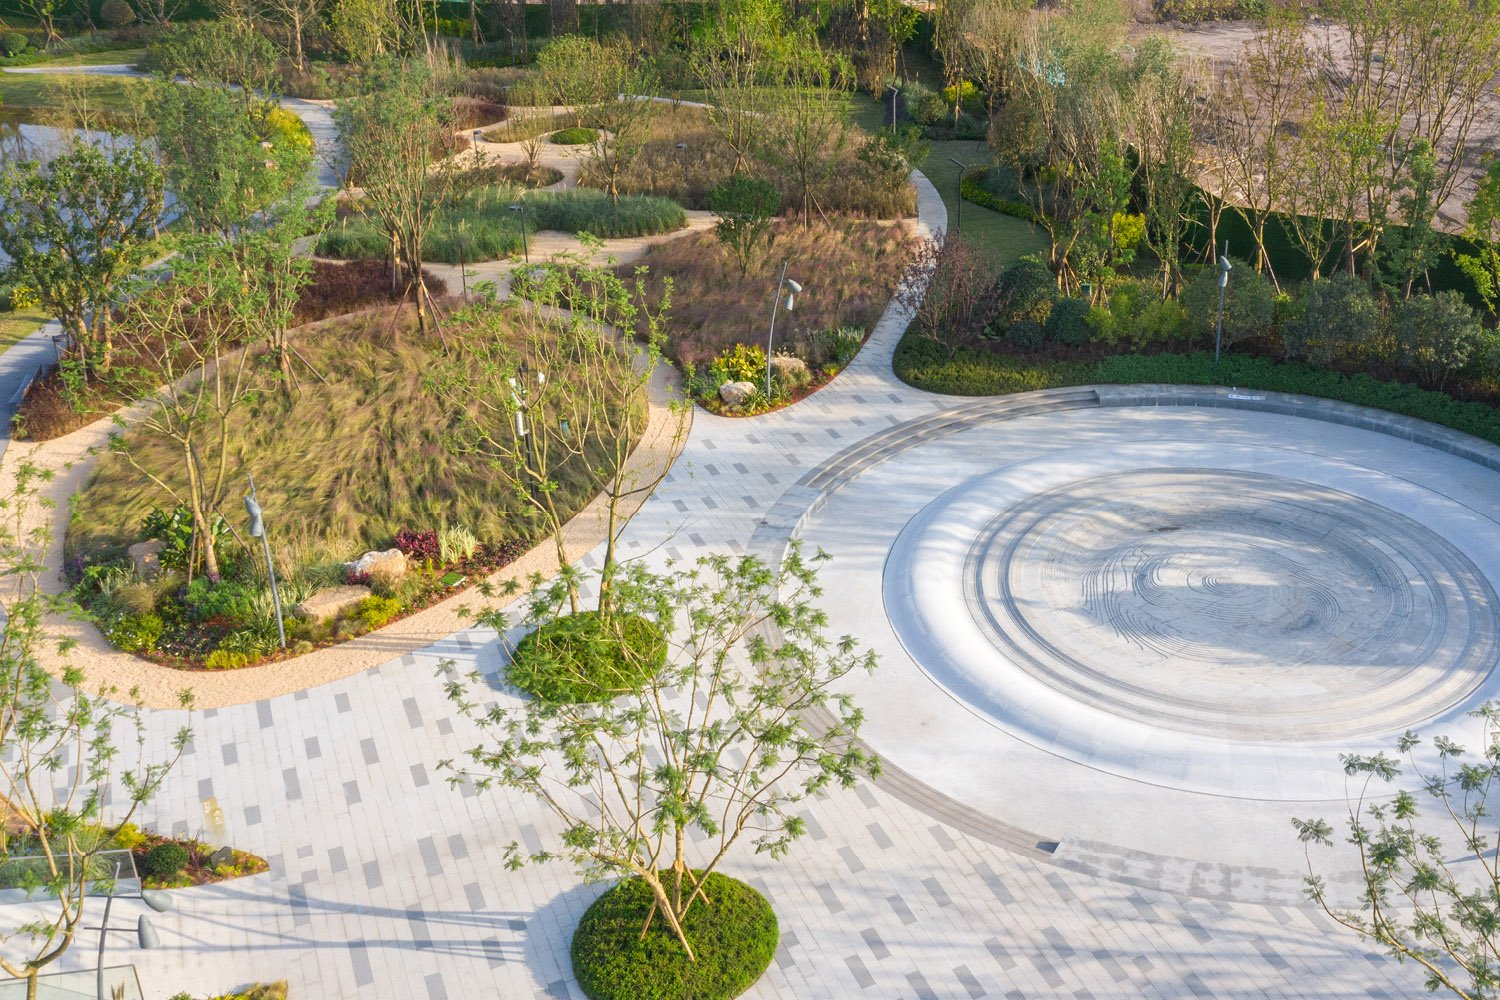 RIPPLE FOUNTAIN AND MAZE:  The design of the ripple fountain and meadow maze draws inspiration from natural phenomena such as rain and wind. SASAKI